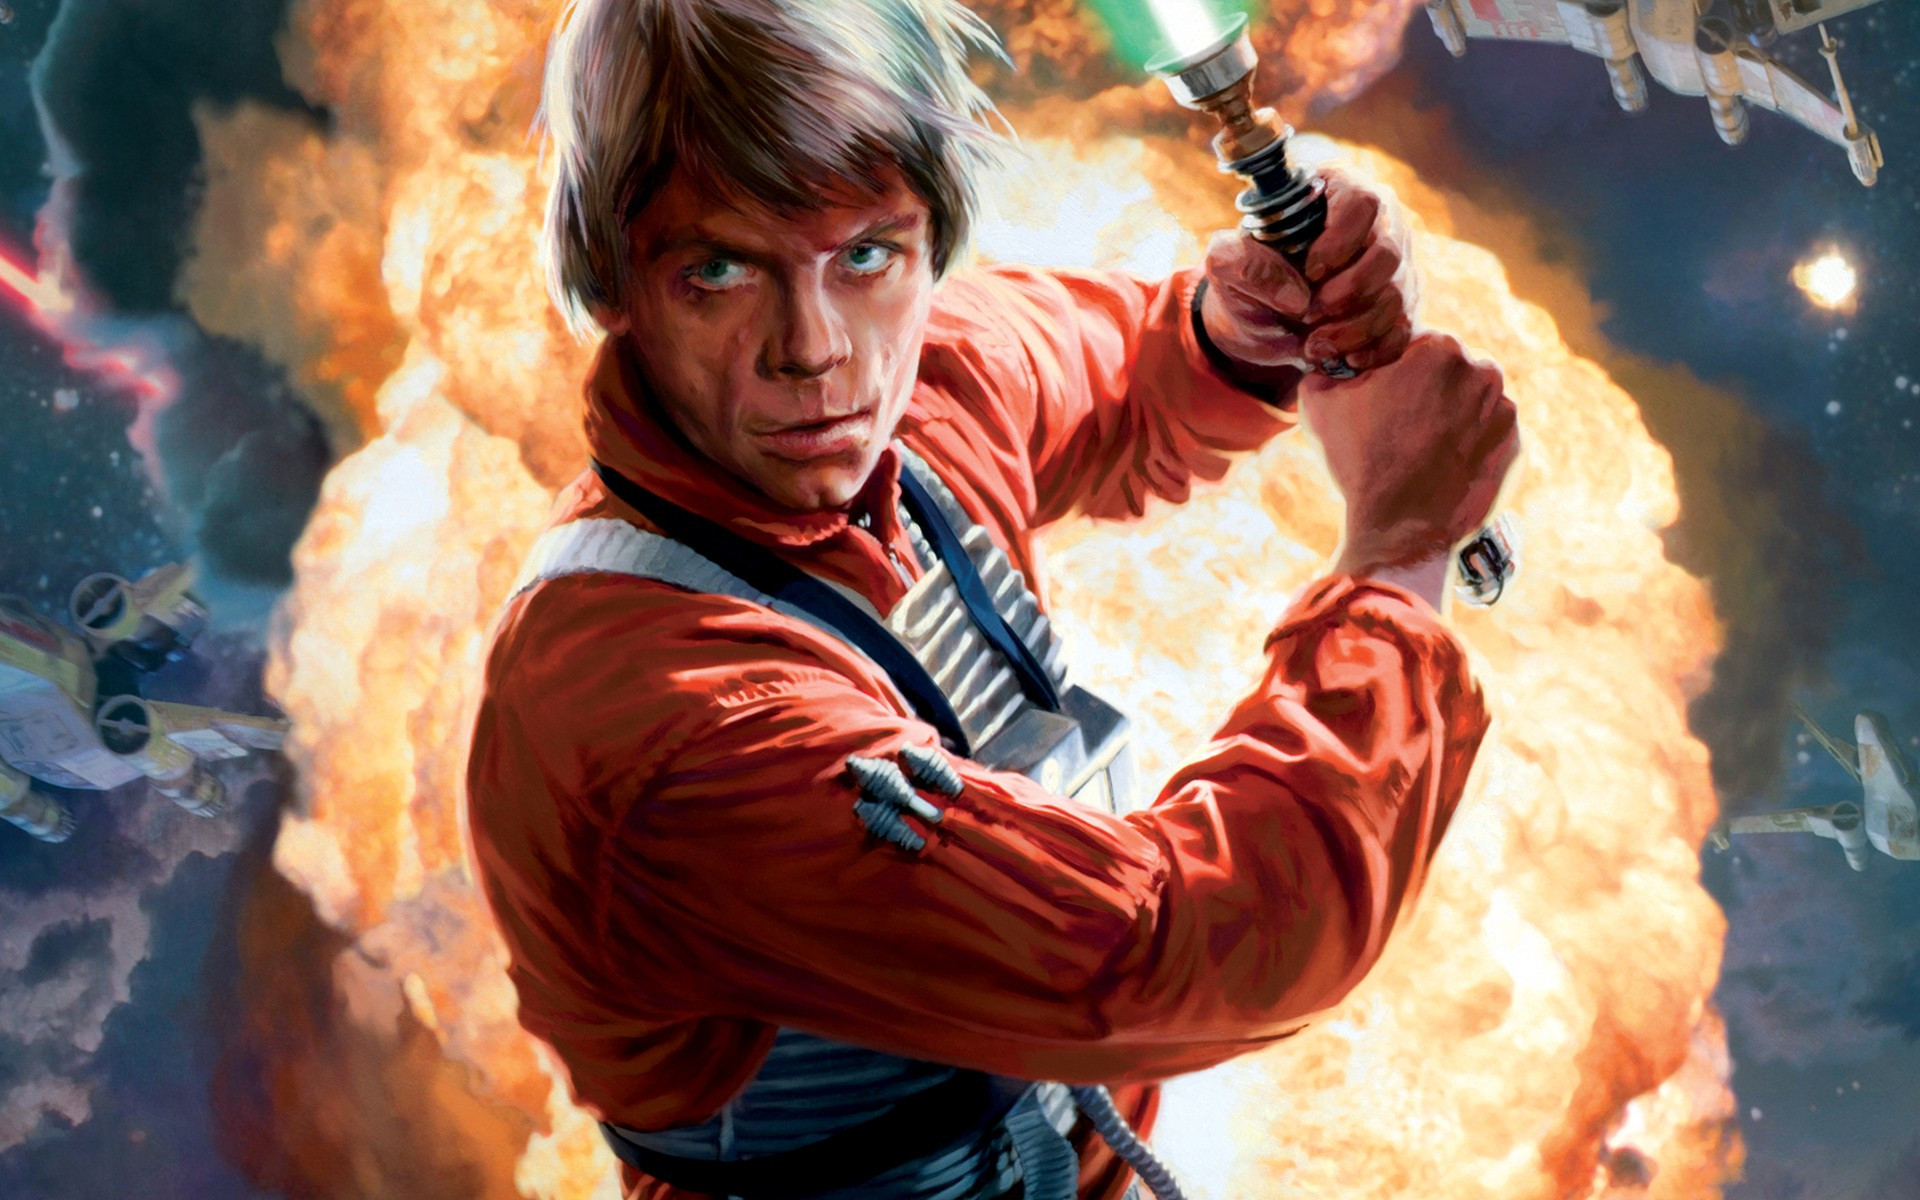 Luke Skywalker wallpaper 5137 1920x1200